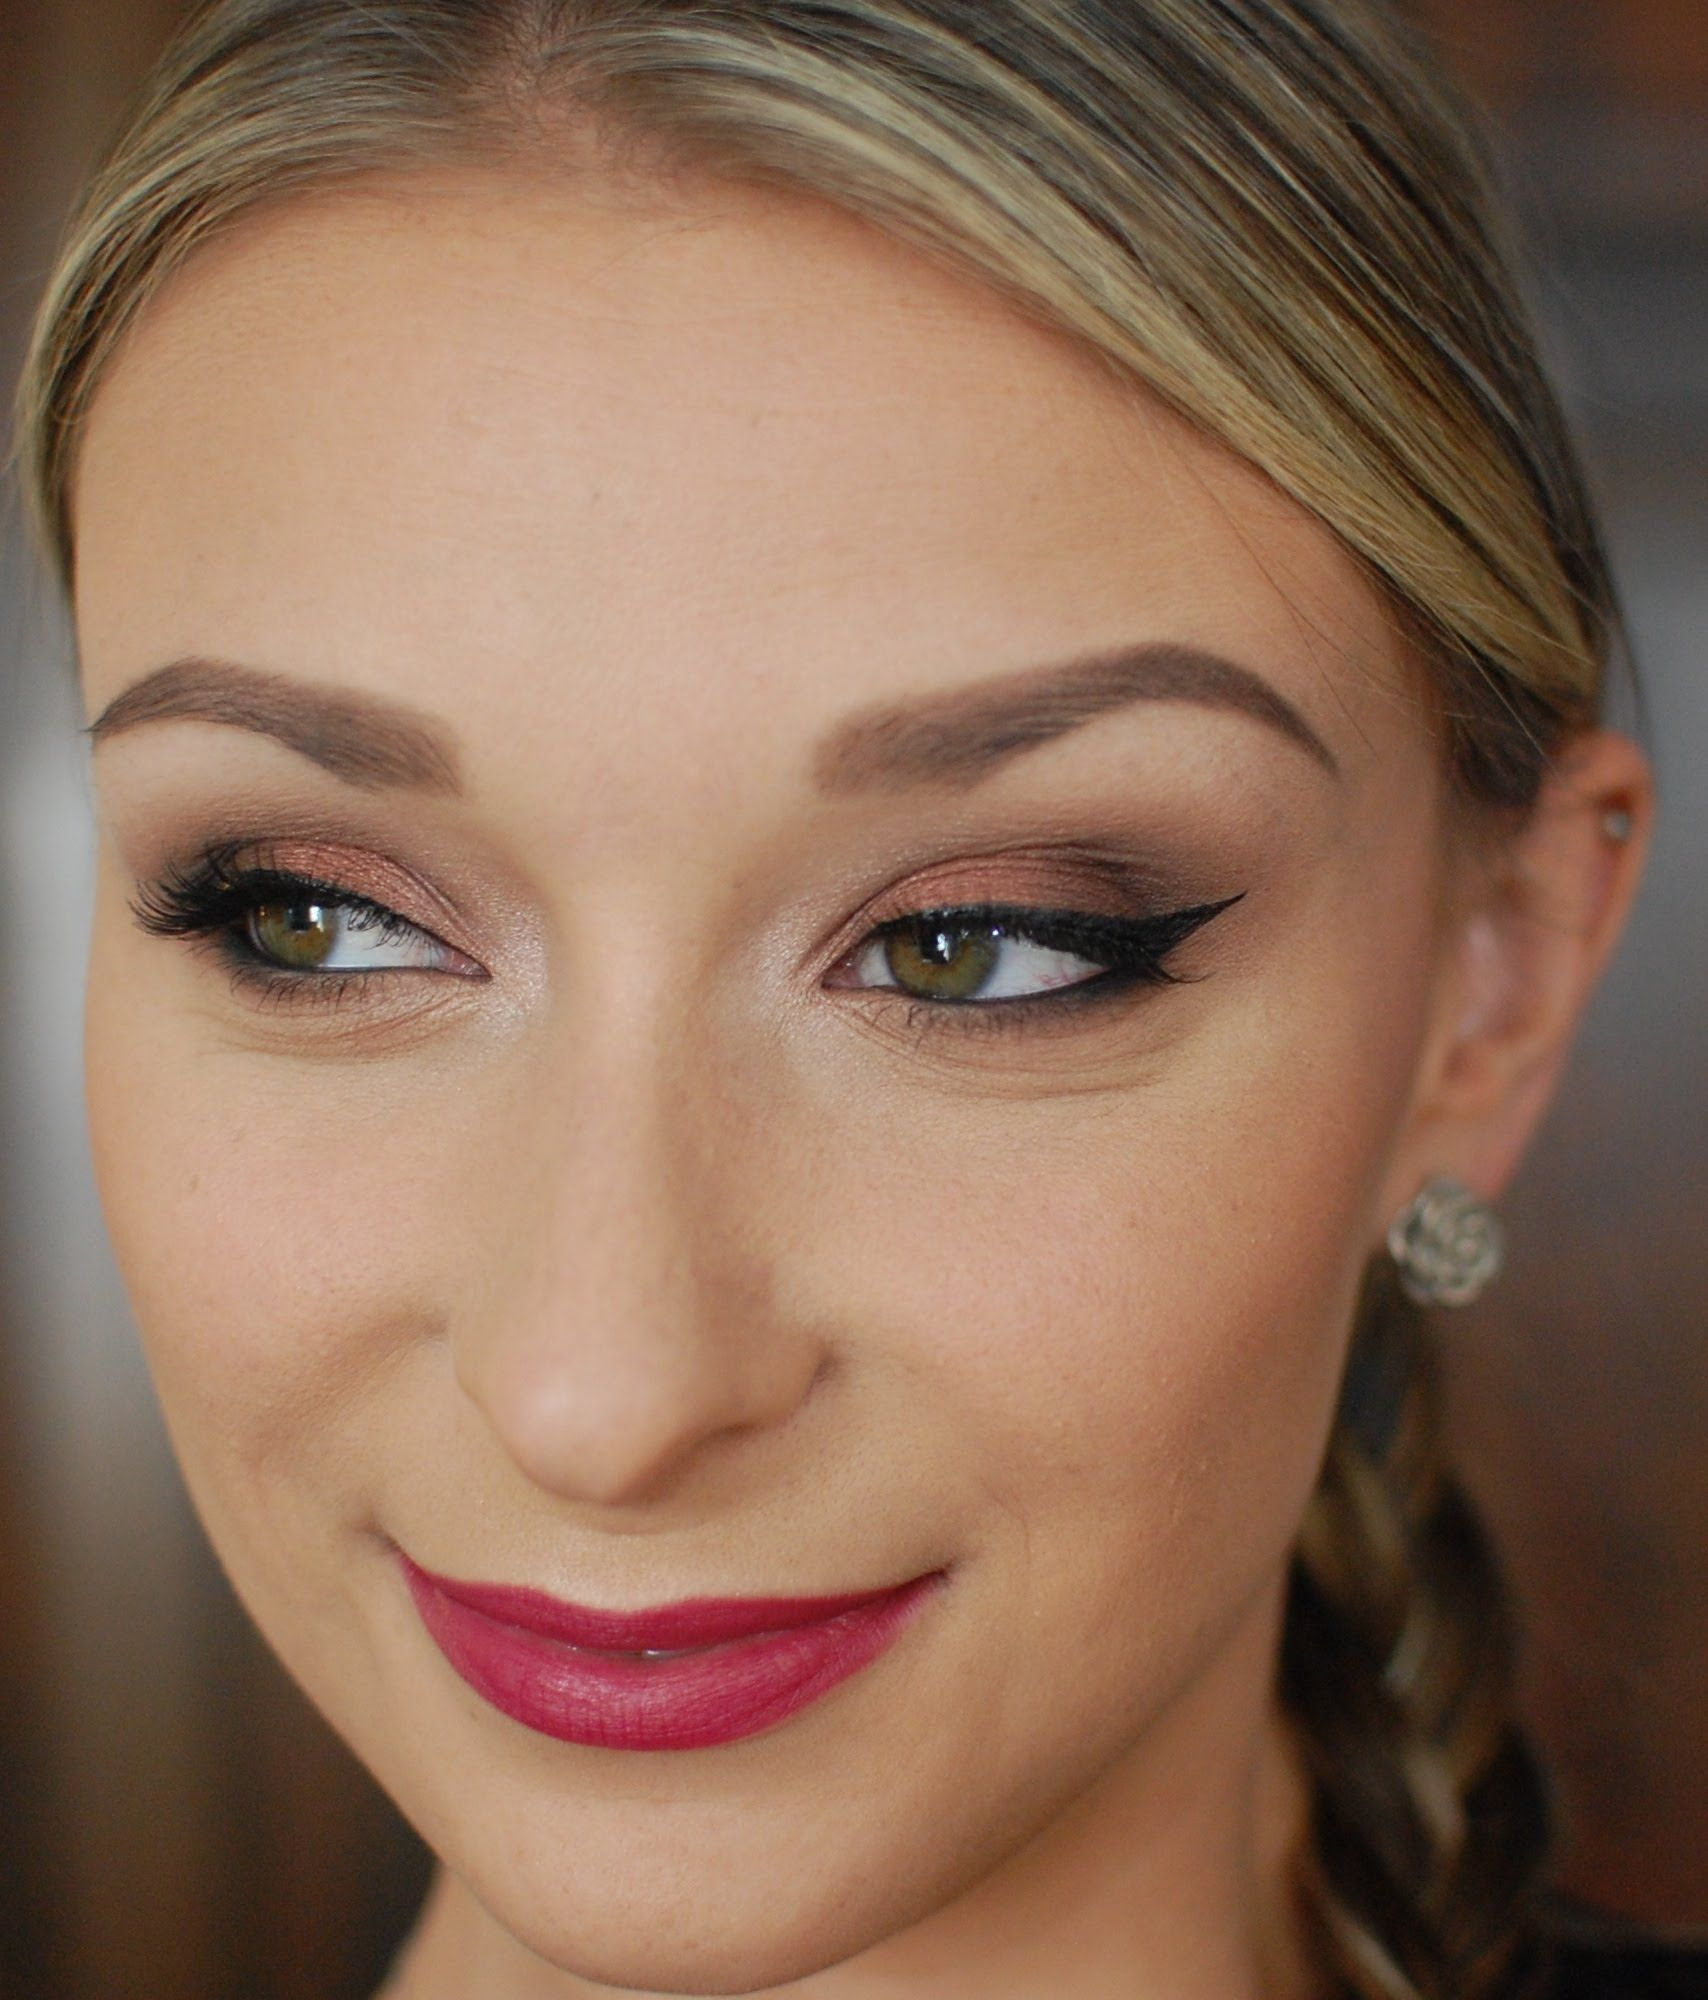 Fall Makeup Tutorial Using the LoracPro Palette